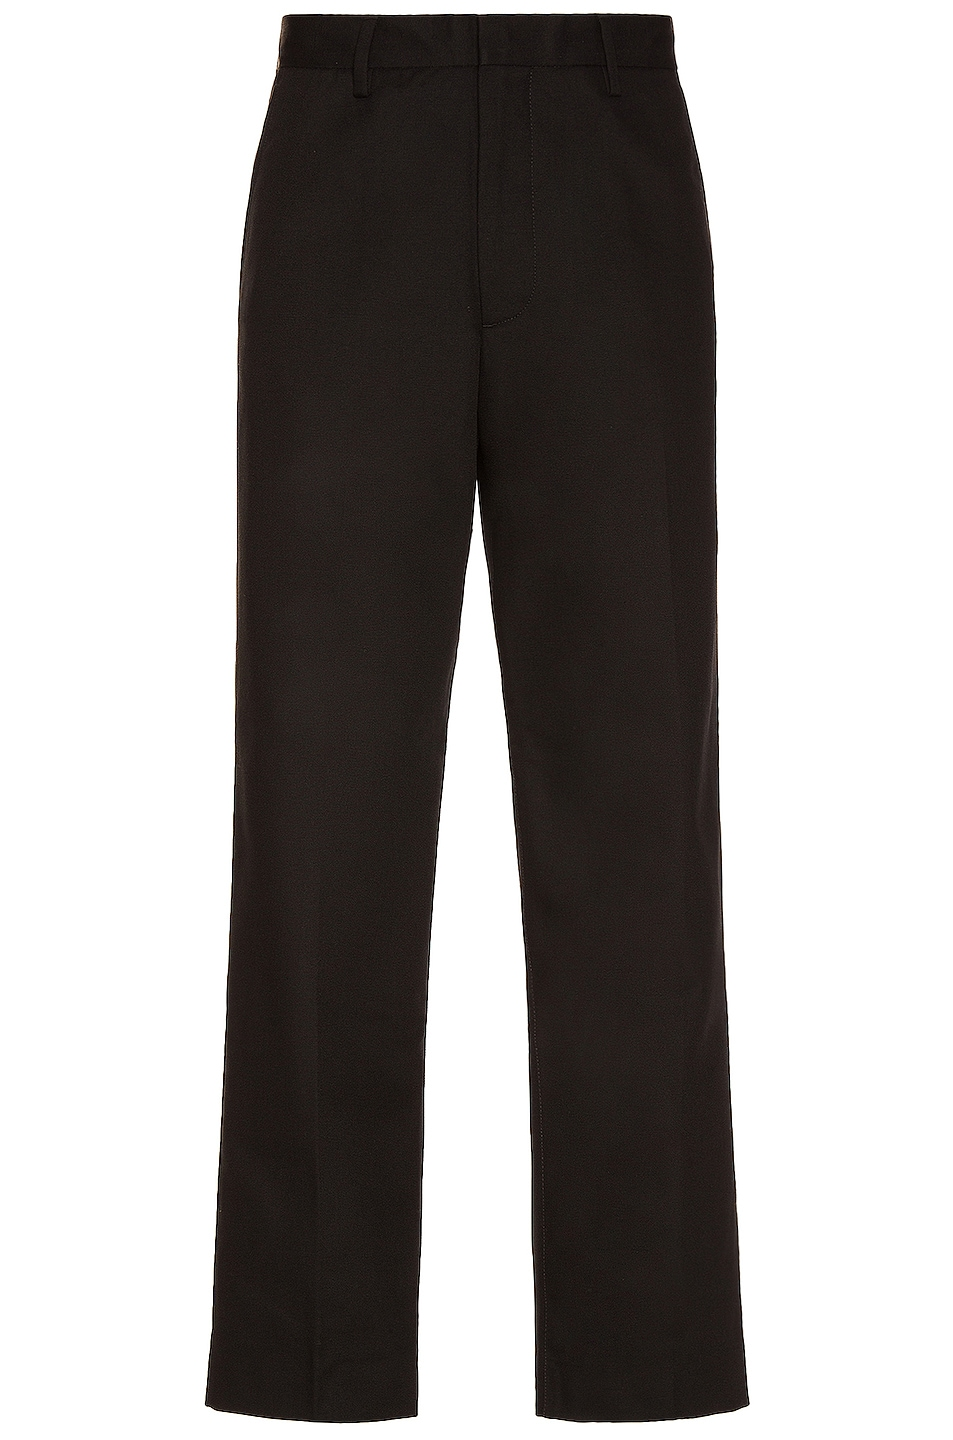 Image 1 of Acne Studios Casual Trousers in Black